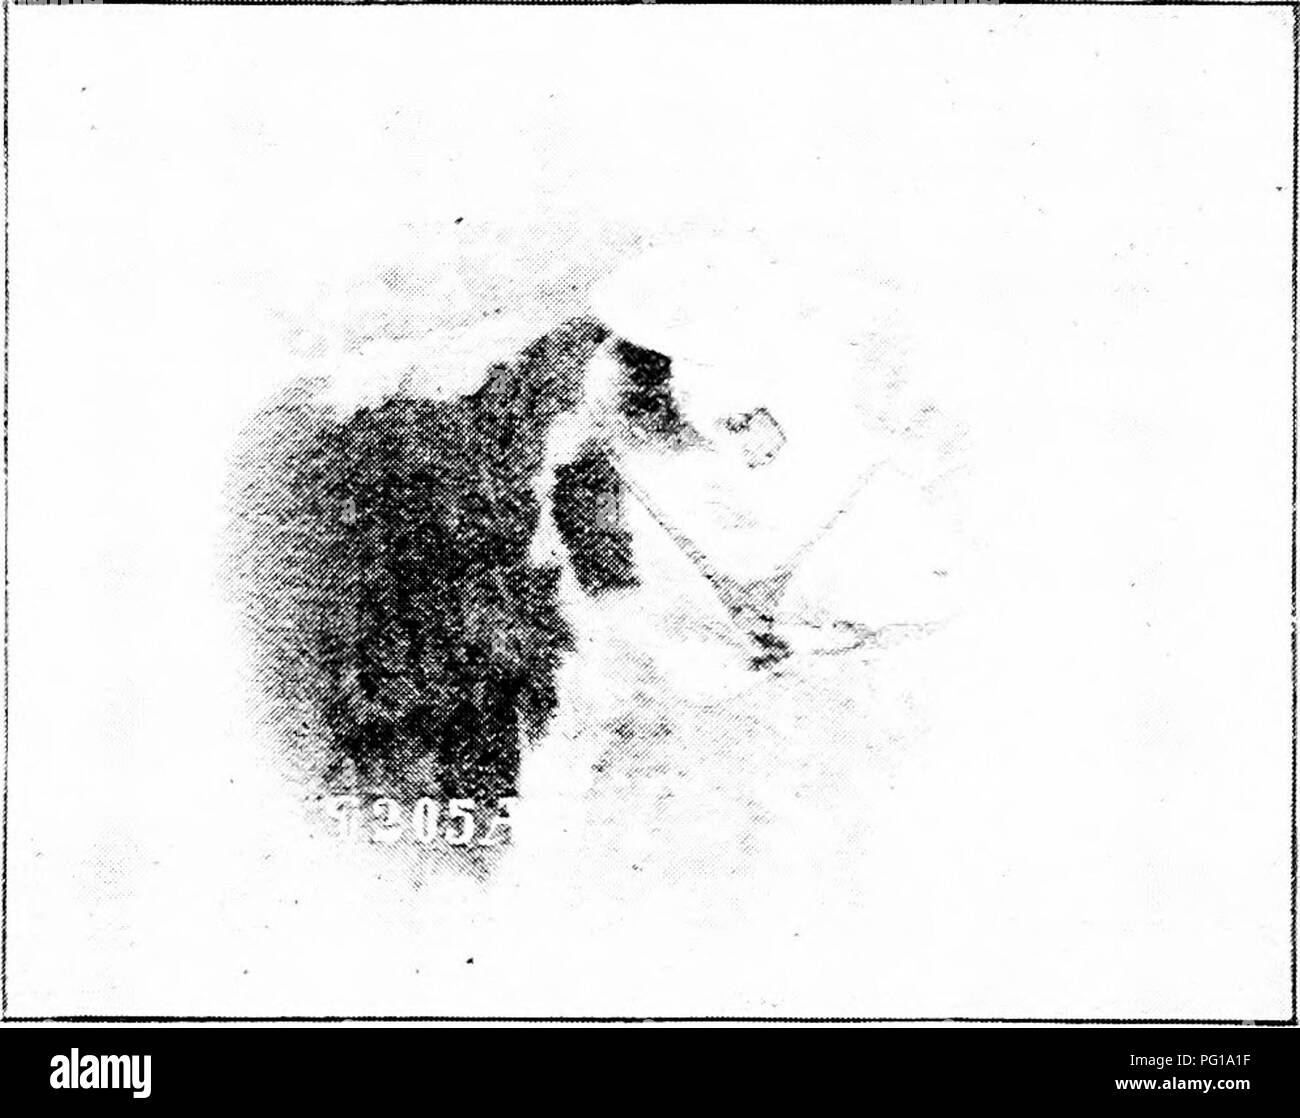 S M A R T Black and White Stock Photos & Images - Alamy